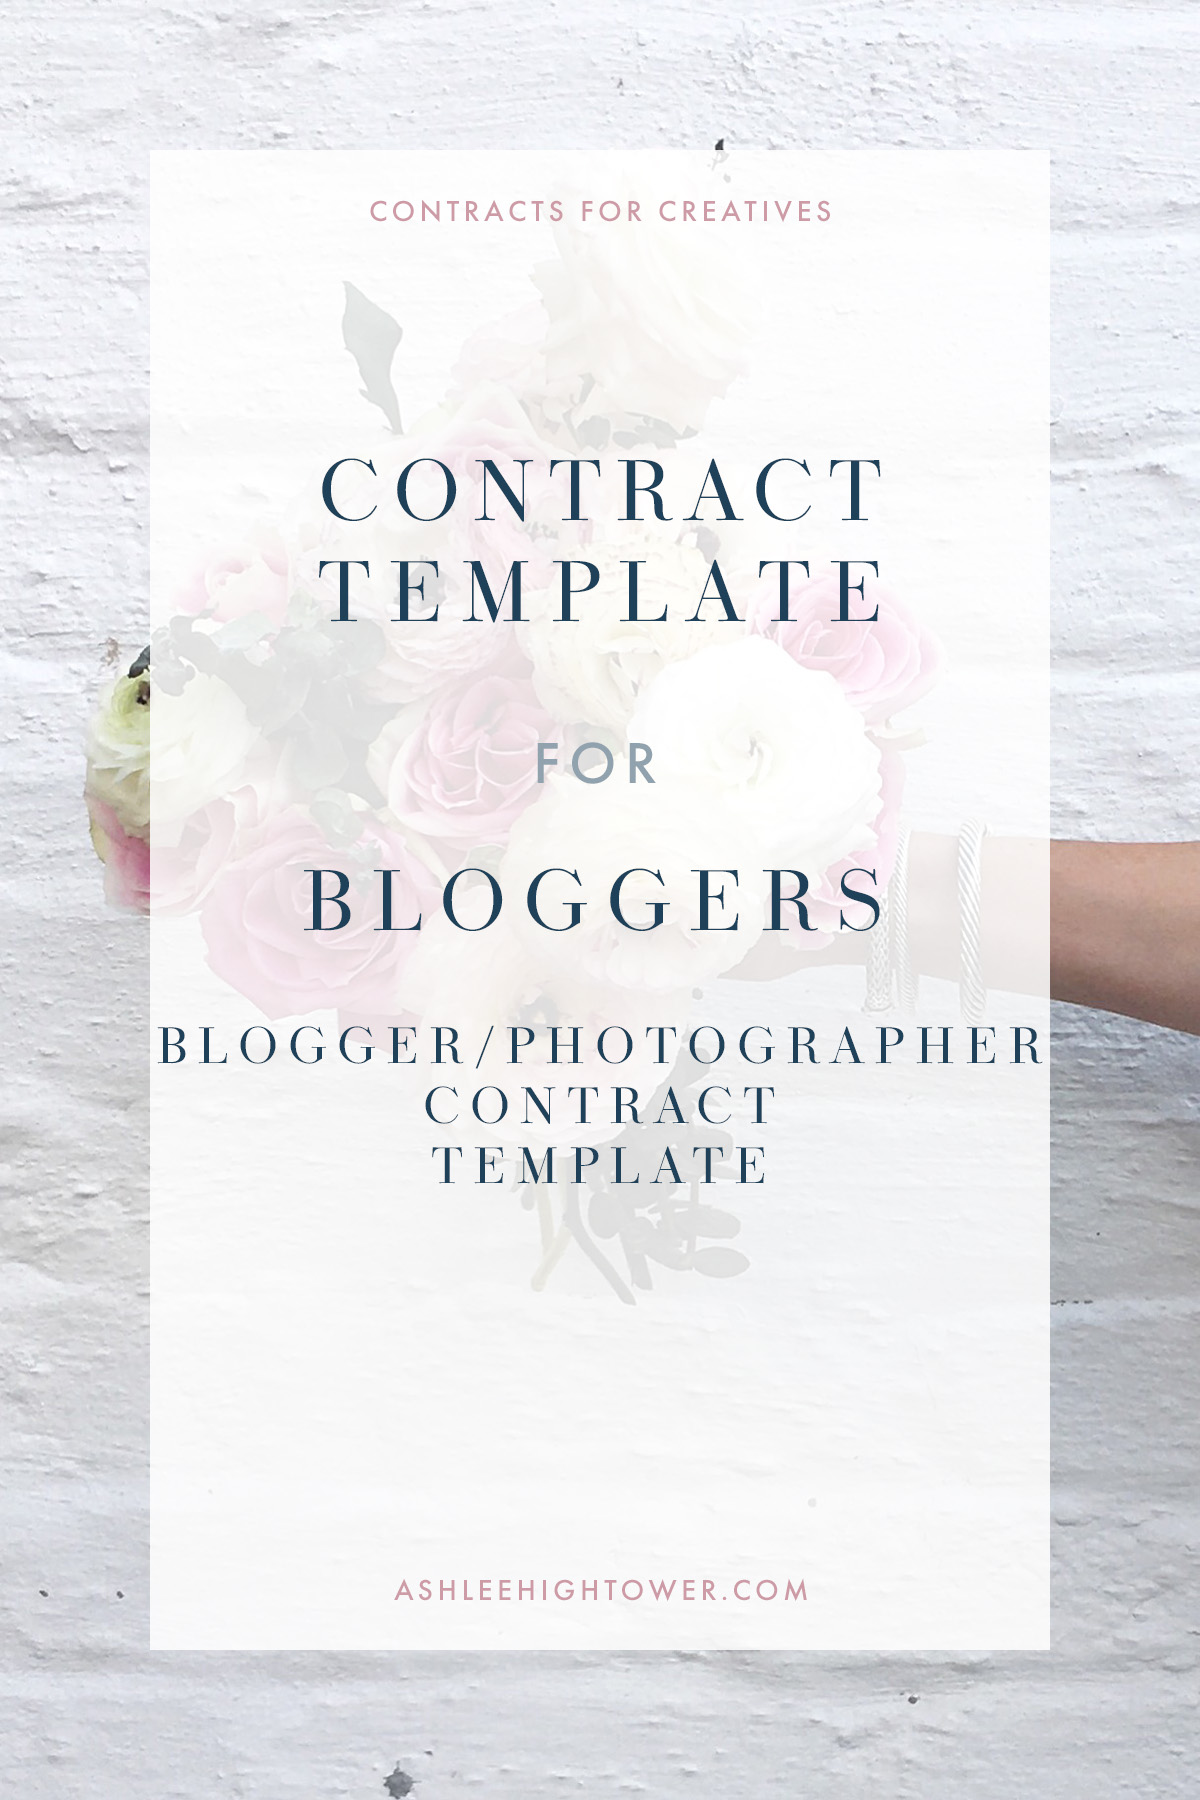 Blogger + Photographer Contract | Contract for Bloggers | Ashlee Hightower